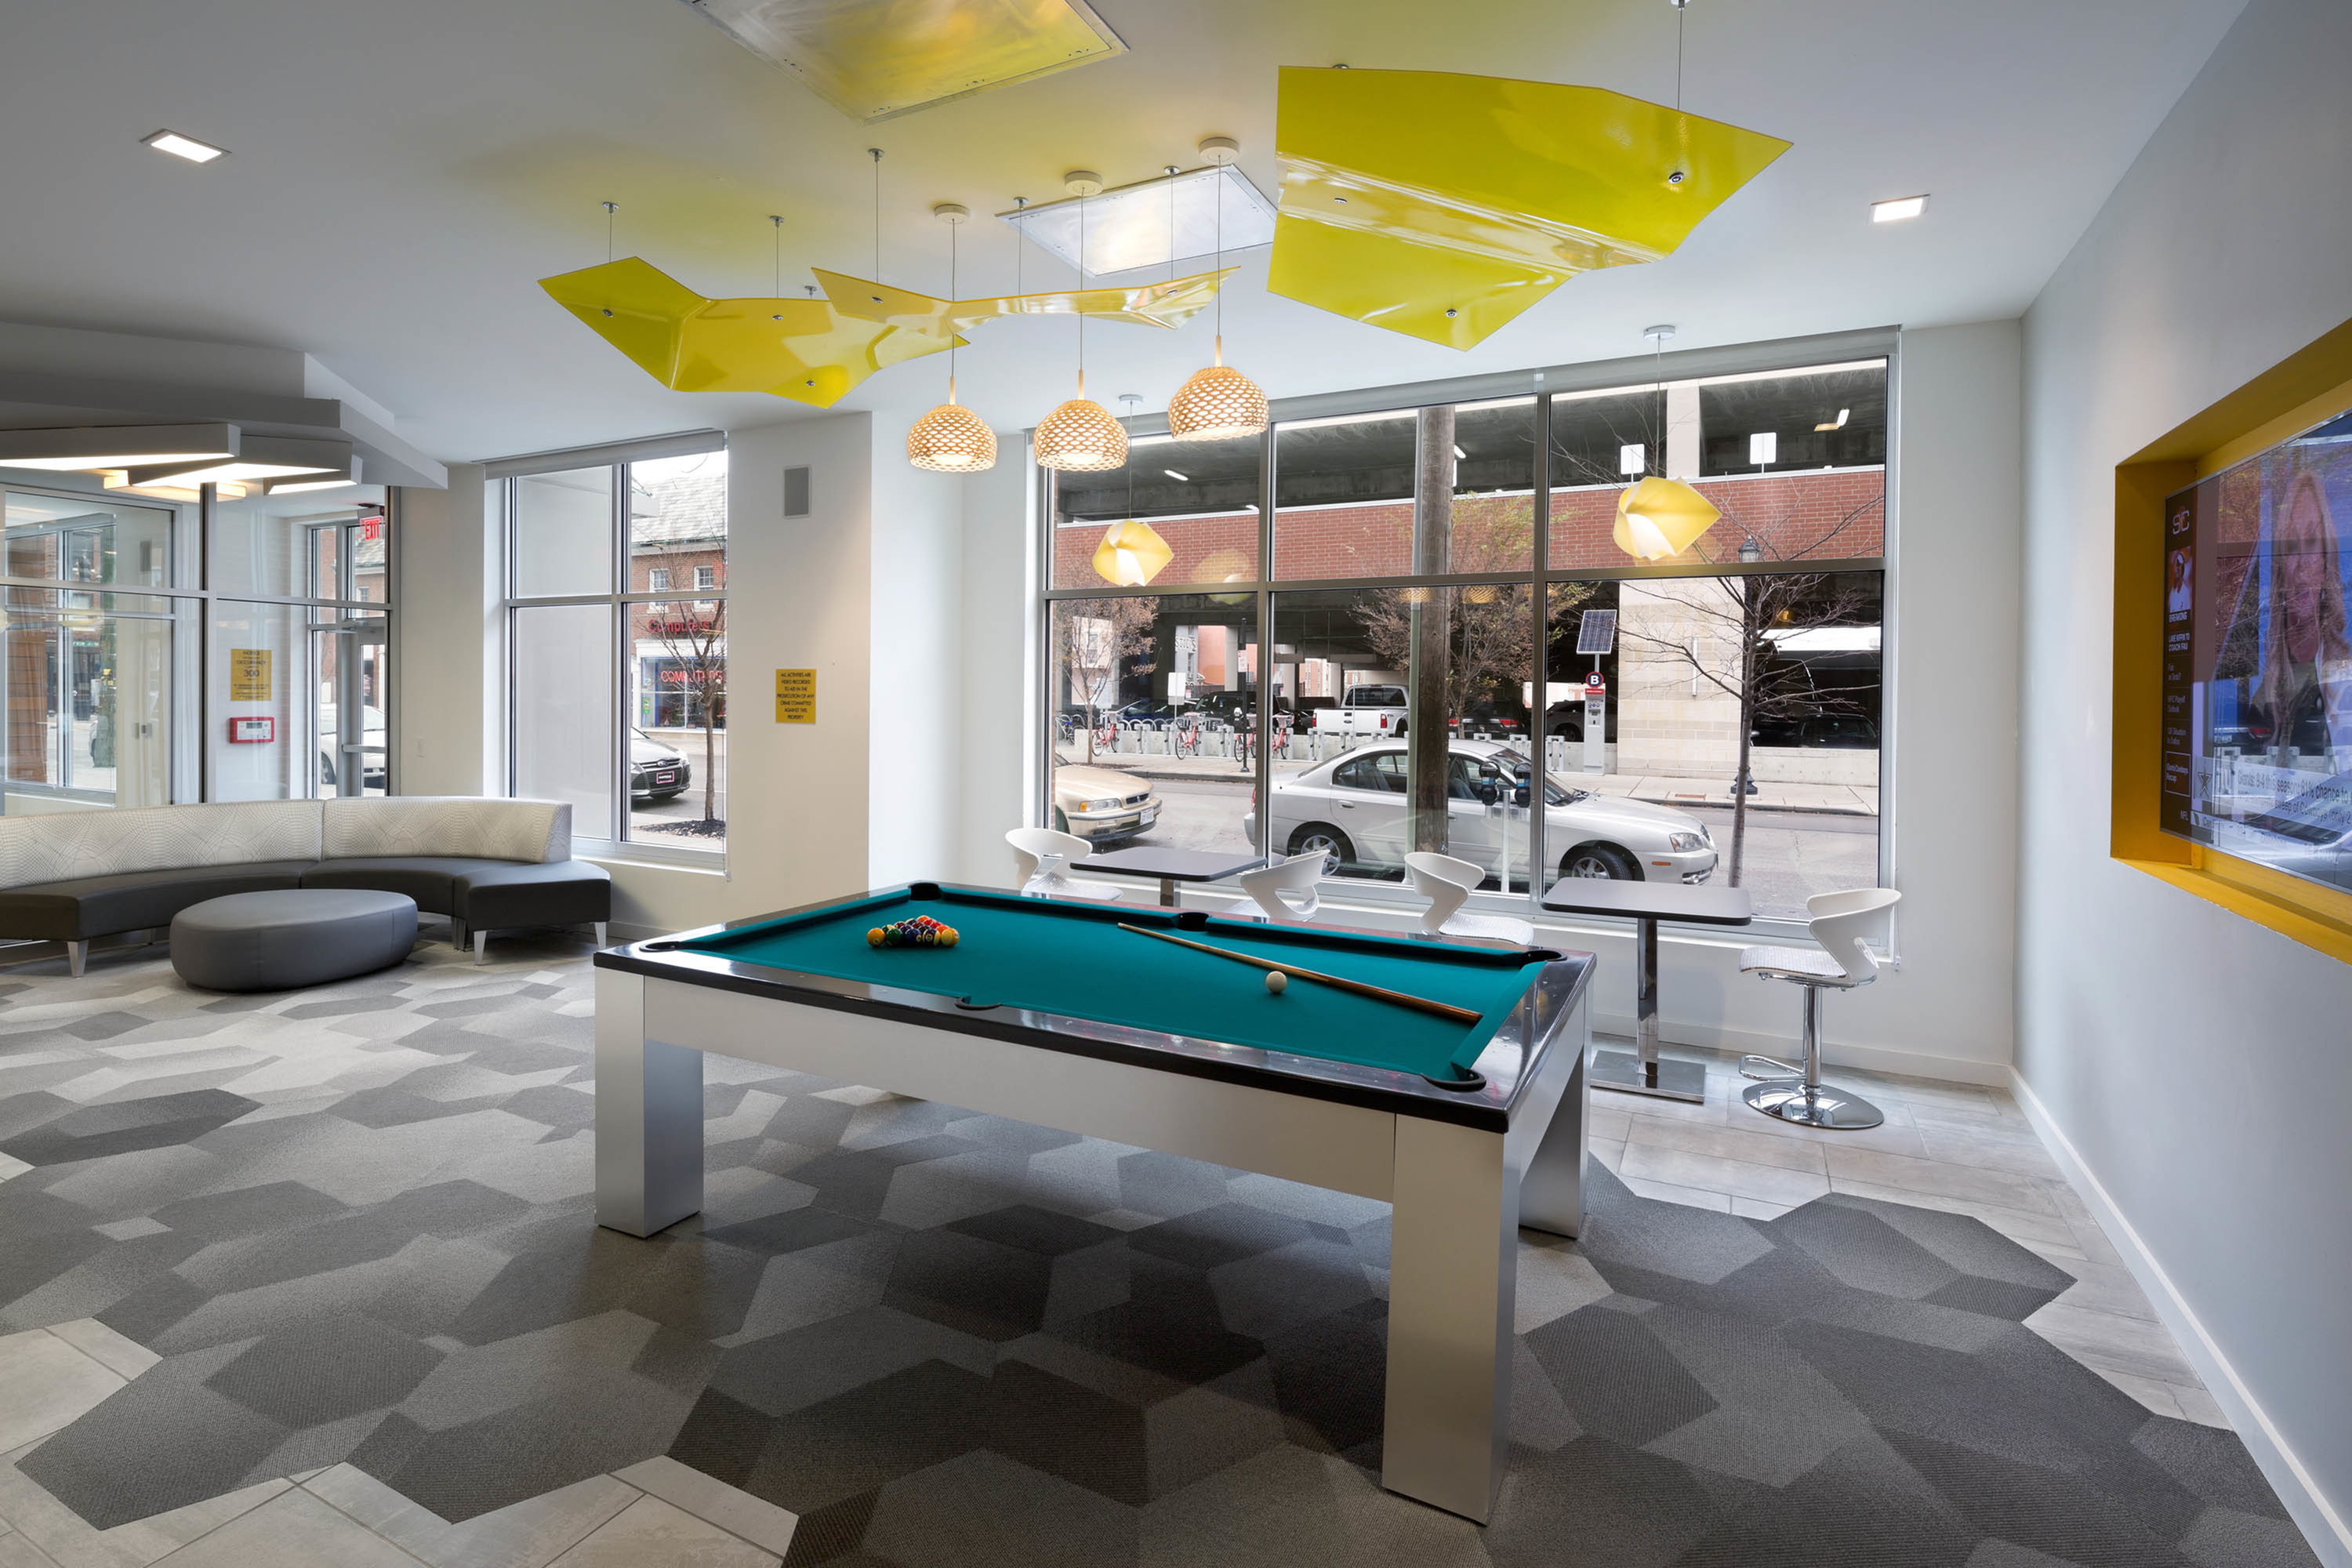 Image of Social Lounge with Game Room for The Verge